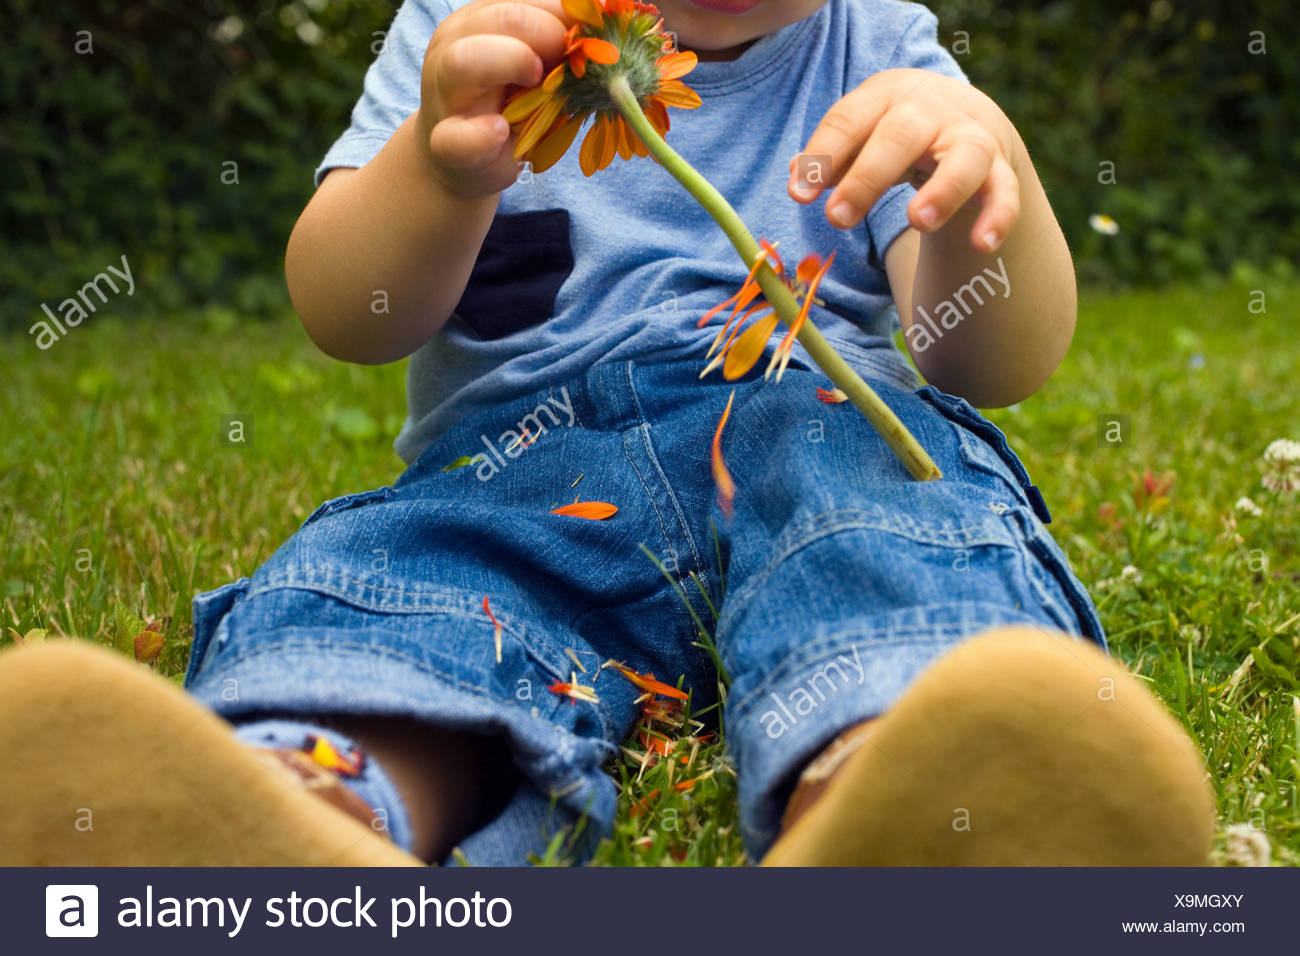 Baby boy picking petals off a flower Stock Photo: 281350131 - Alamy